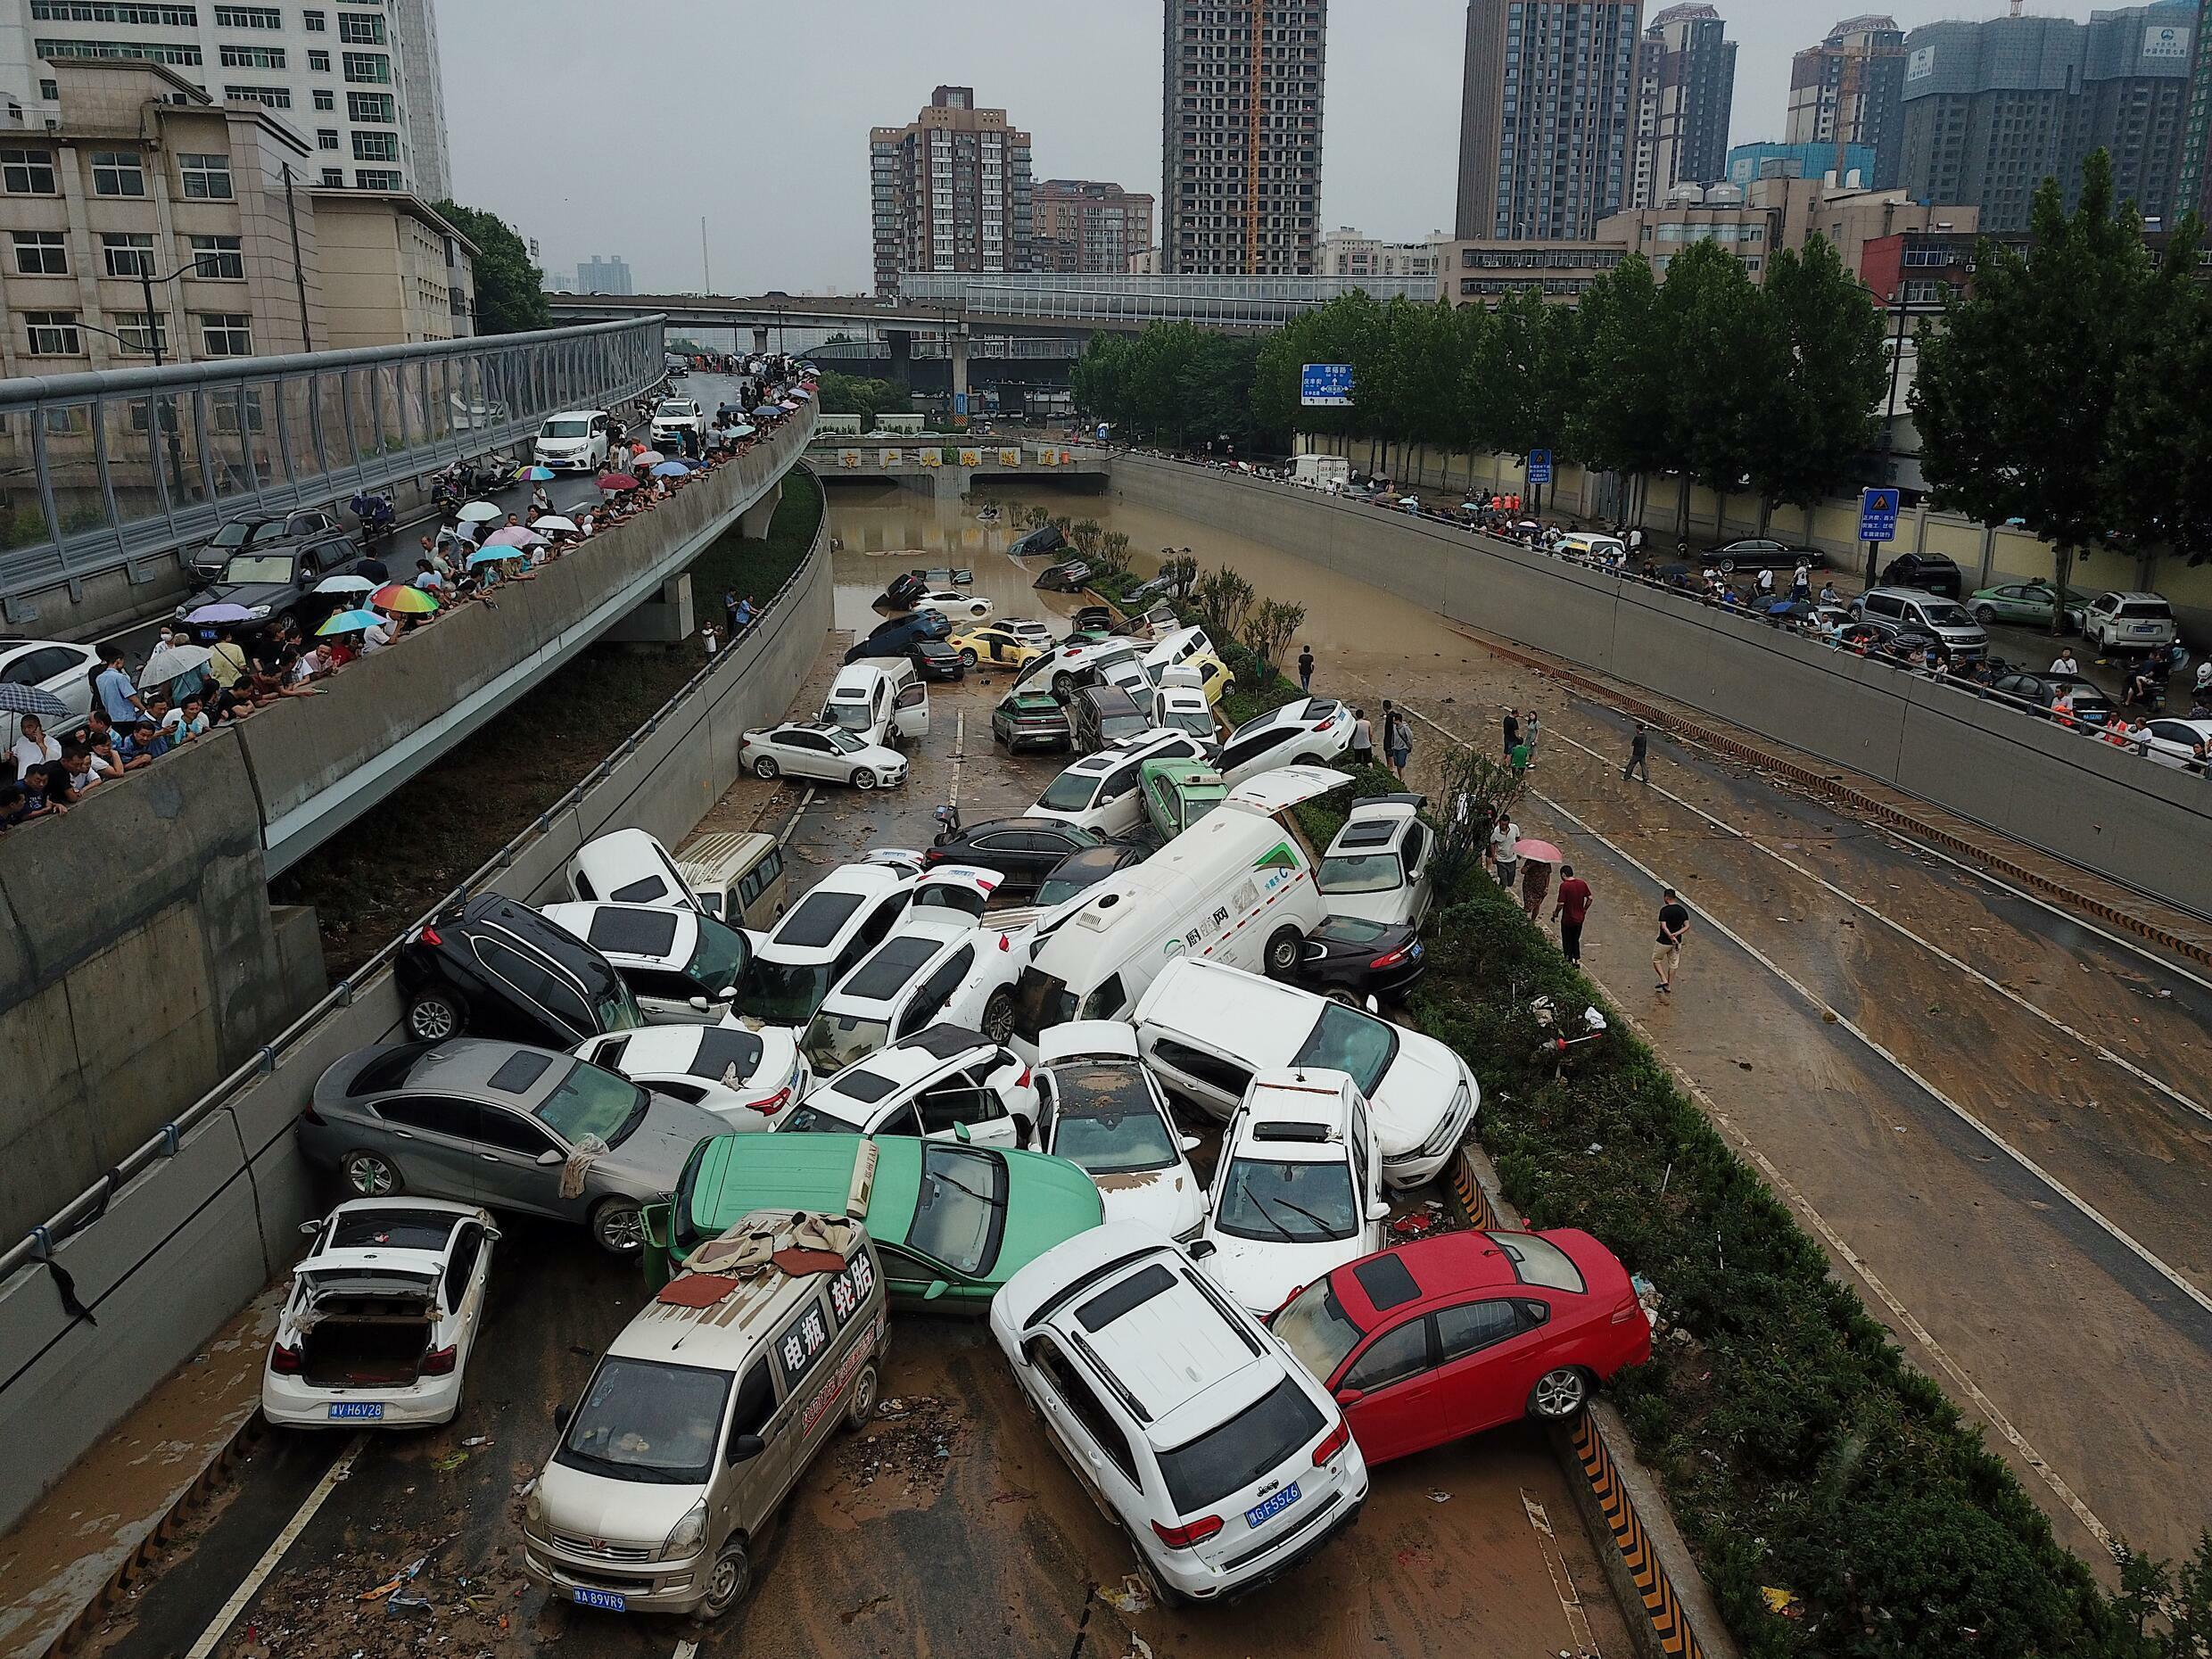 Cars were strewn over roads after the heavy rains hit the city of Zhengzhou